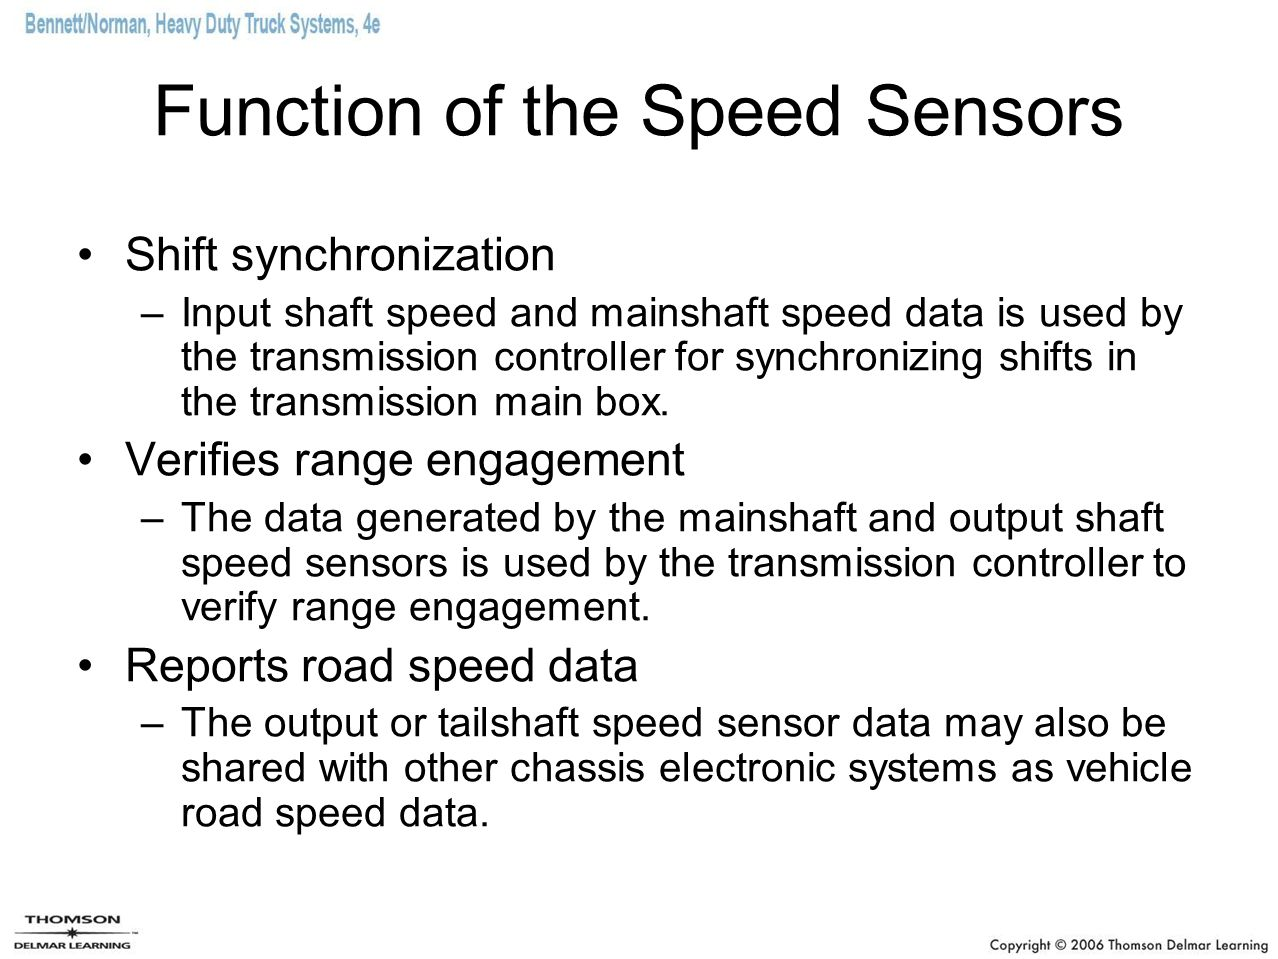 Function of the Speed Sensors